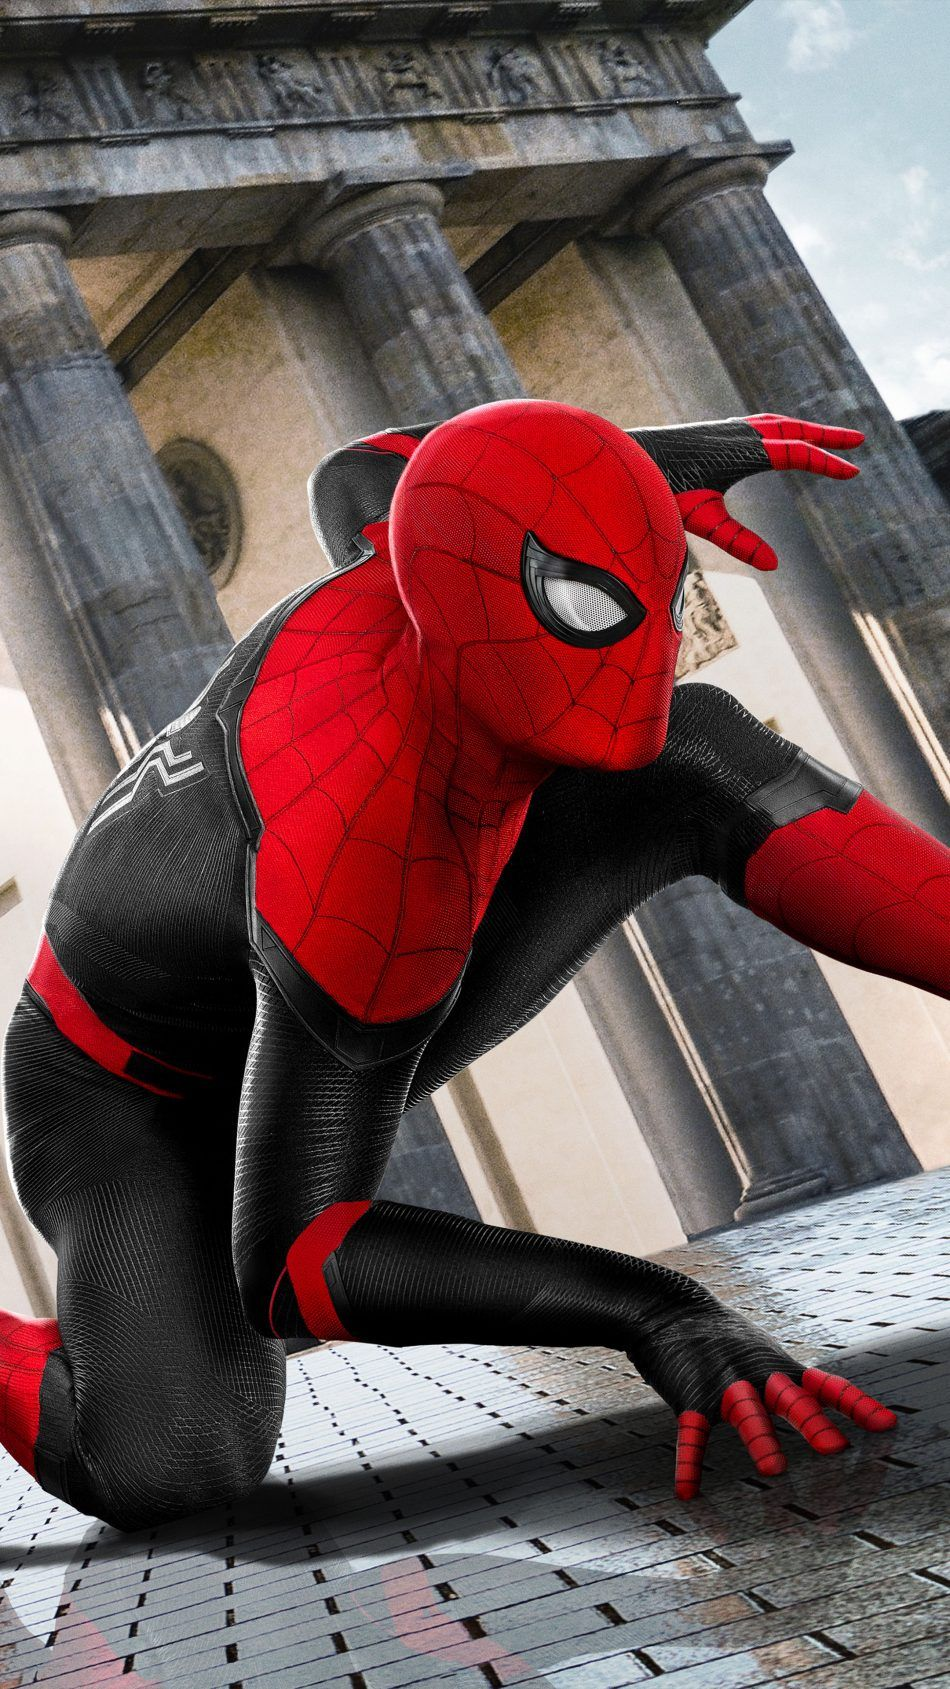 Download SpiderMan Far From Home 2019 Free Pure 4K Ultra